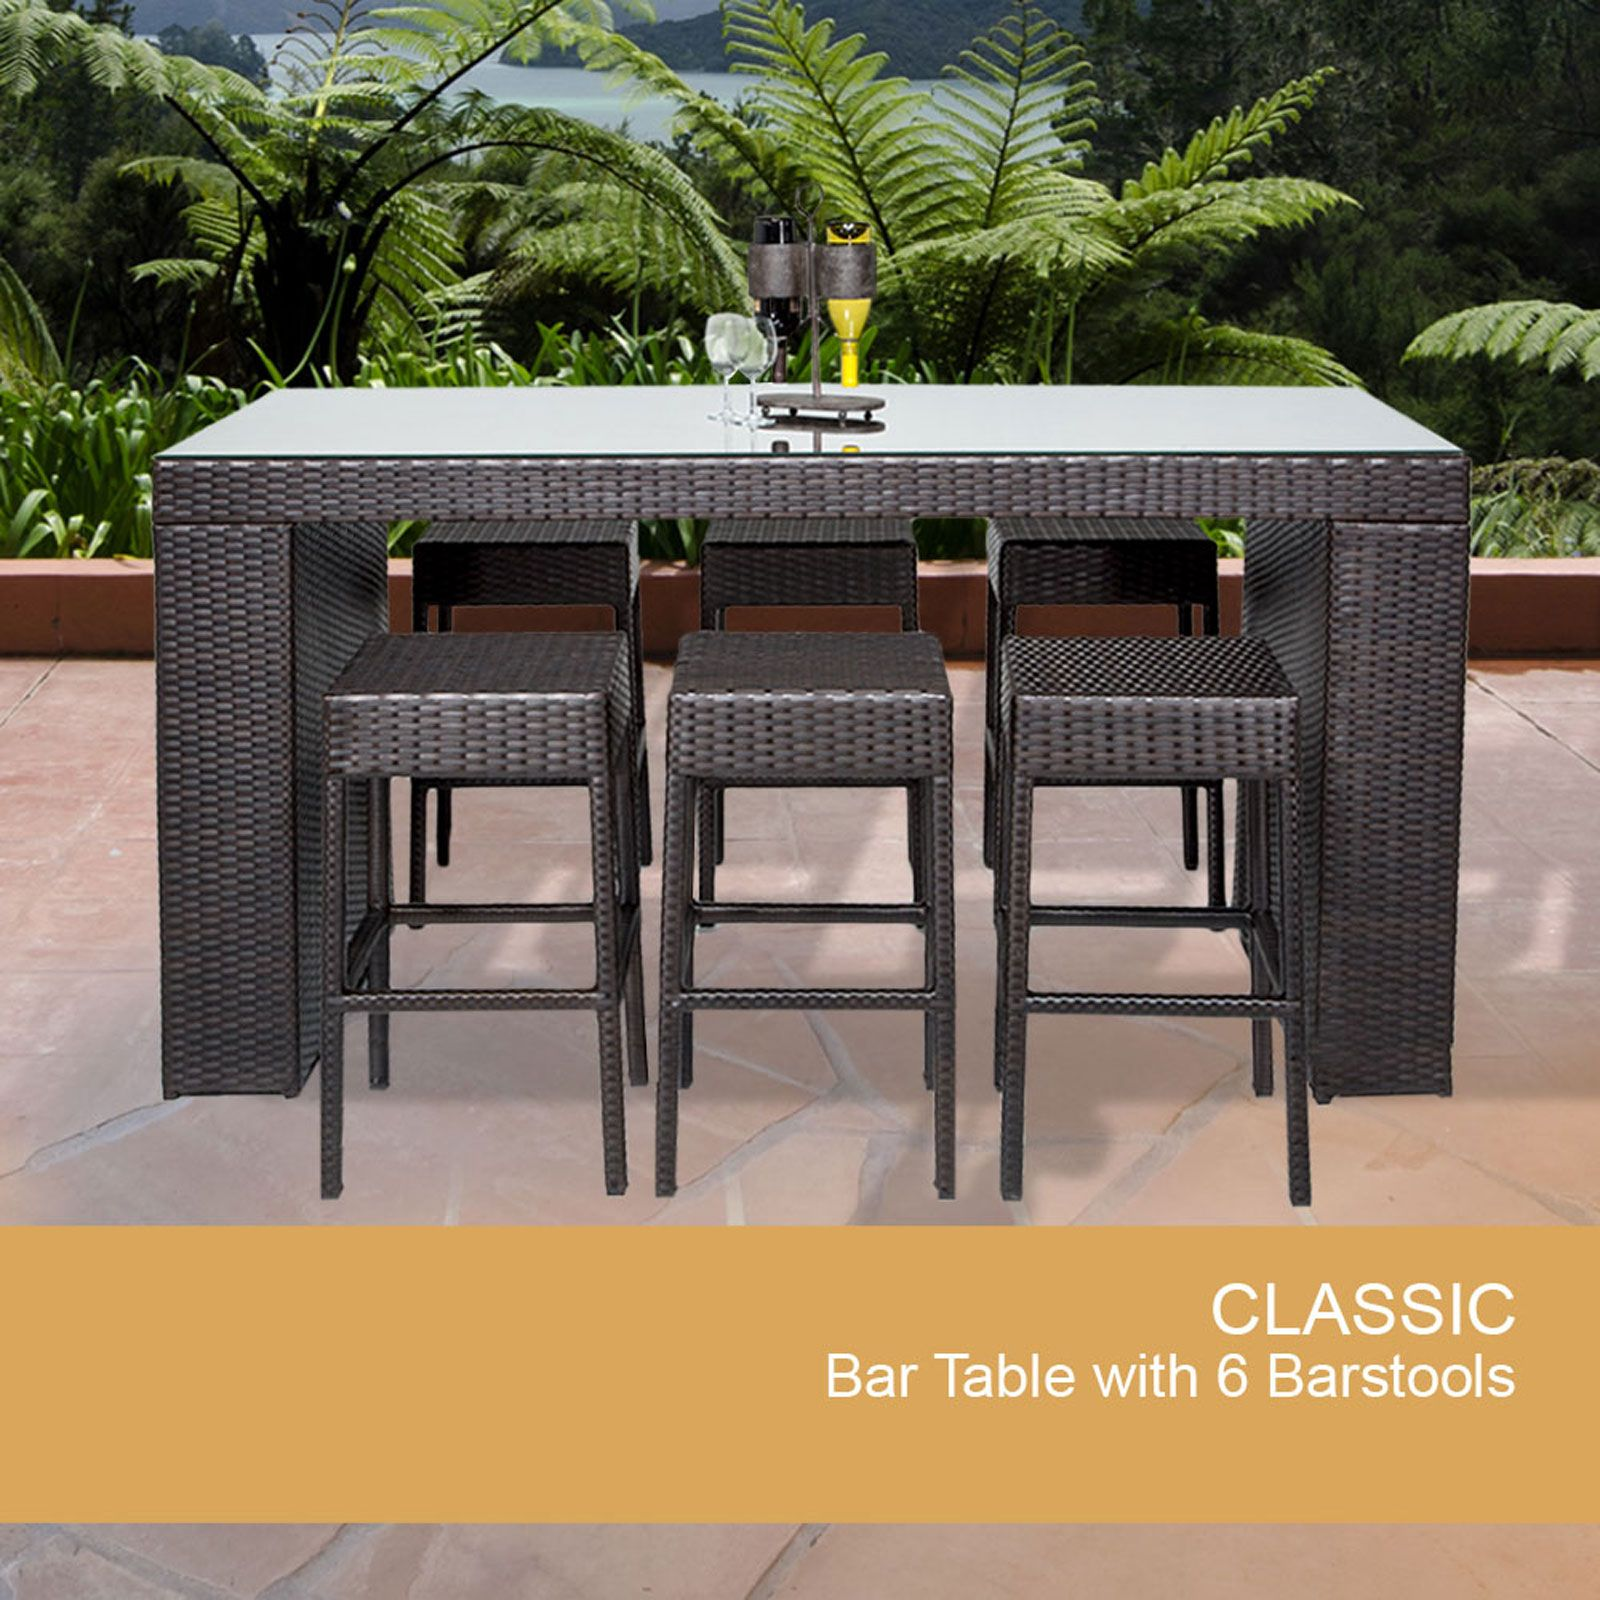 Bar Table Set With Backless Barstools 7 Piece Outdoor Wicker Patio Furniture    Design Furnishings